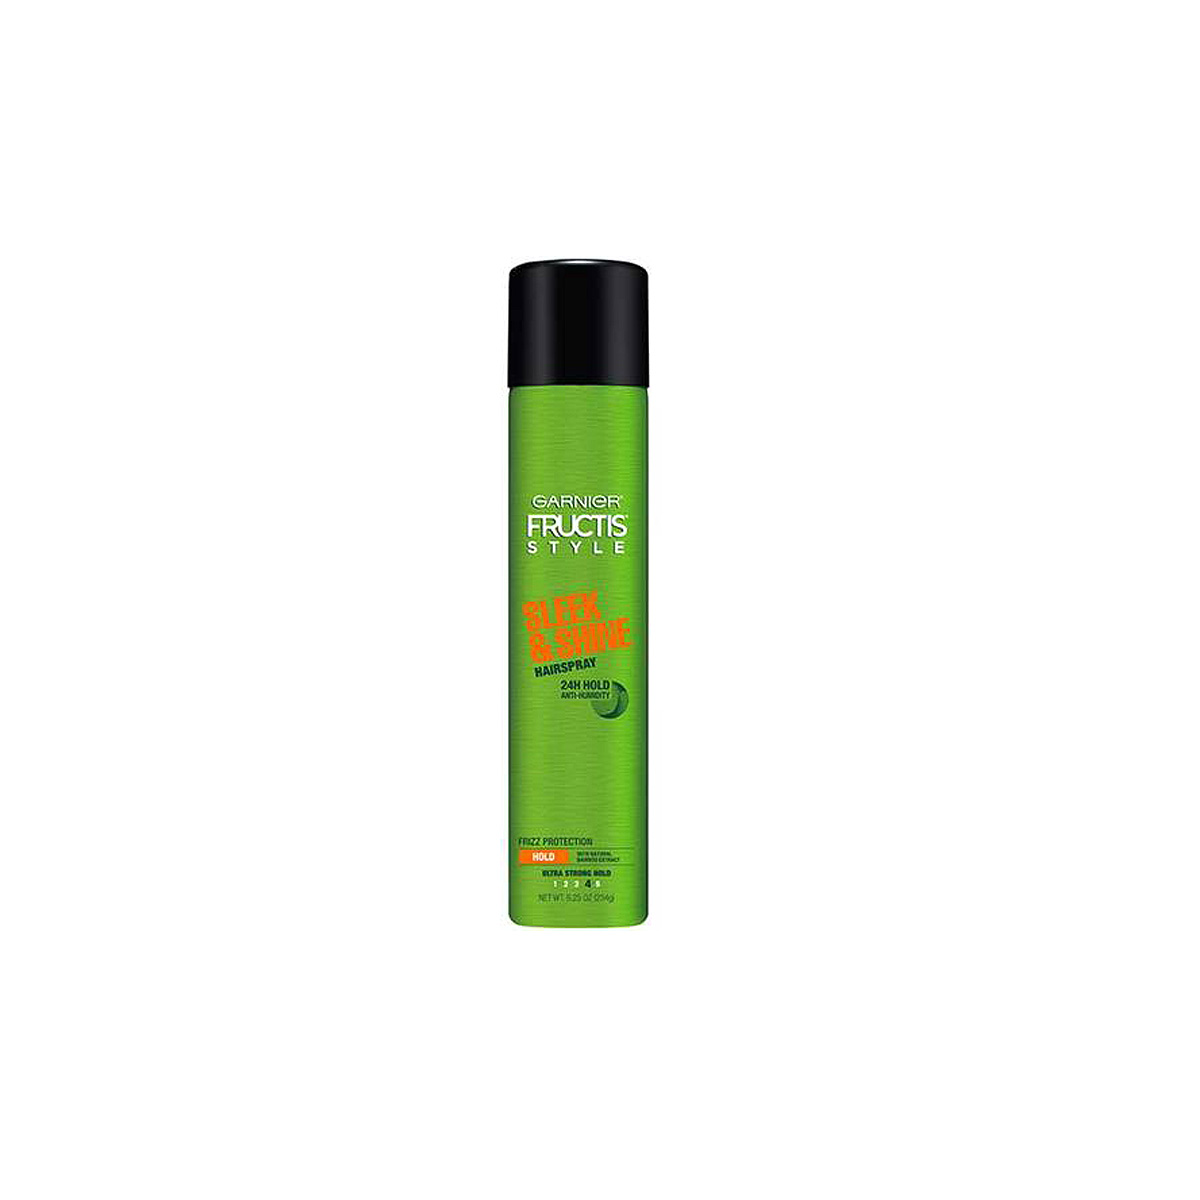 garnier-fructis-spray.jpg